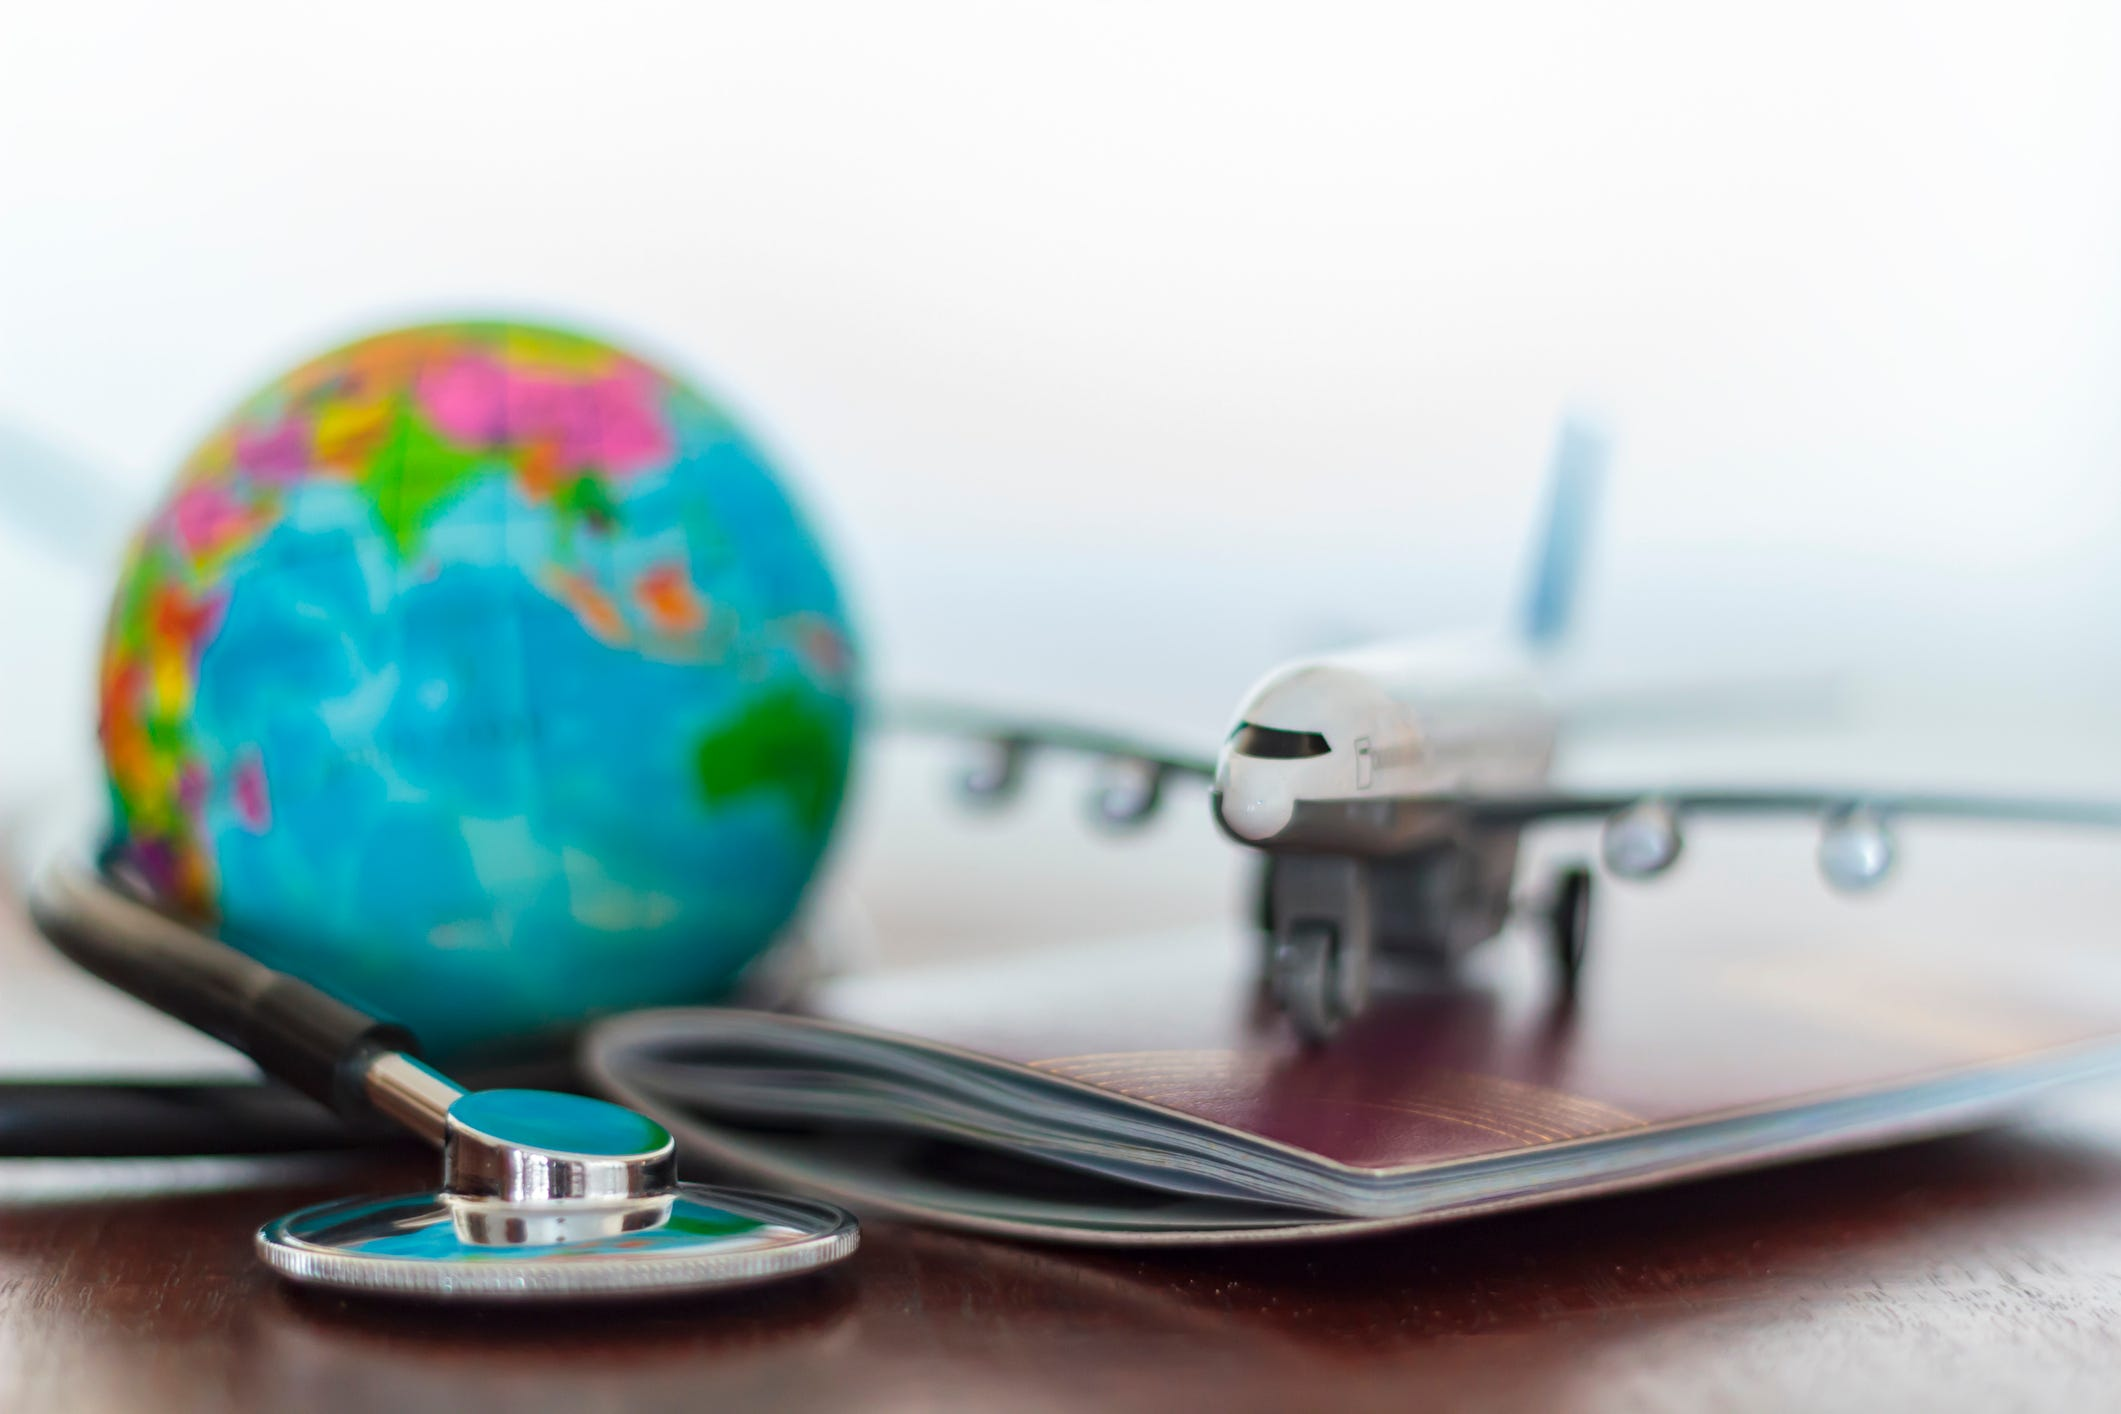 'Vaccination vacations': International travelers booking U.S. trips to get COVID-19 shots